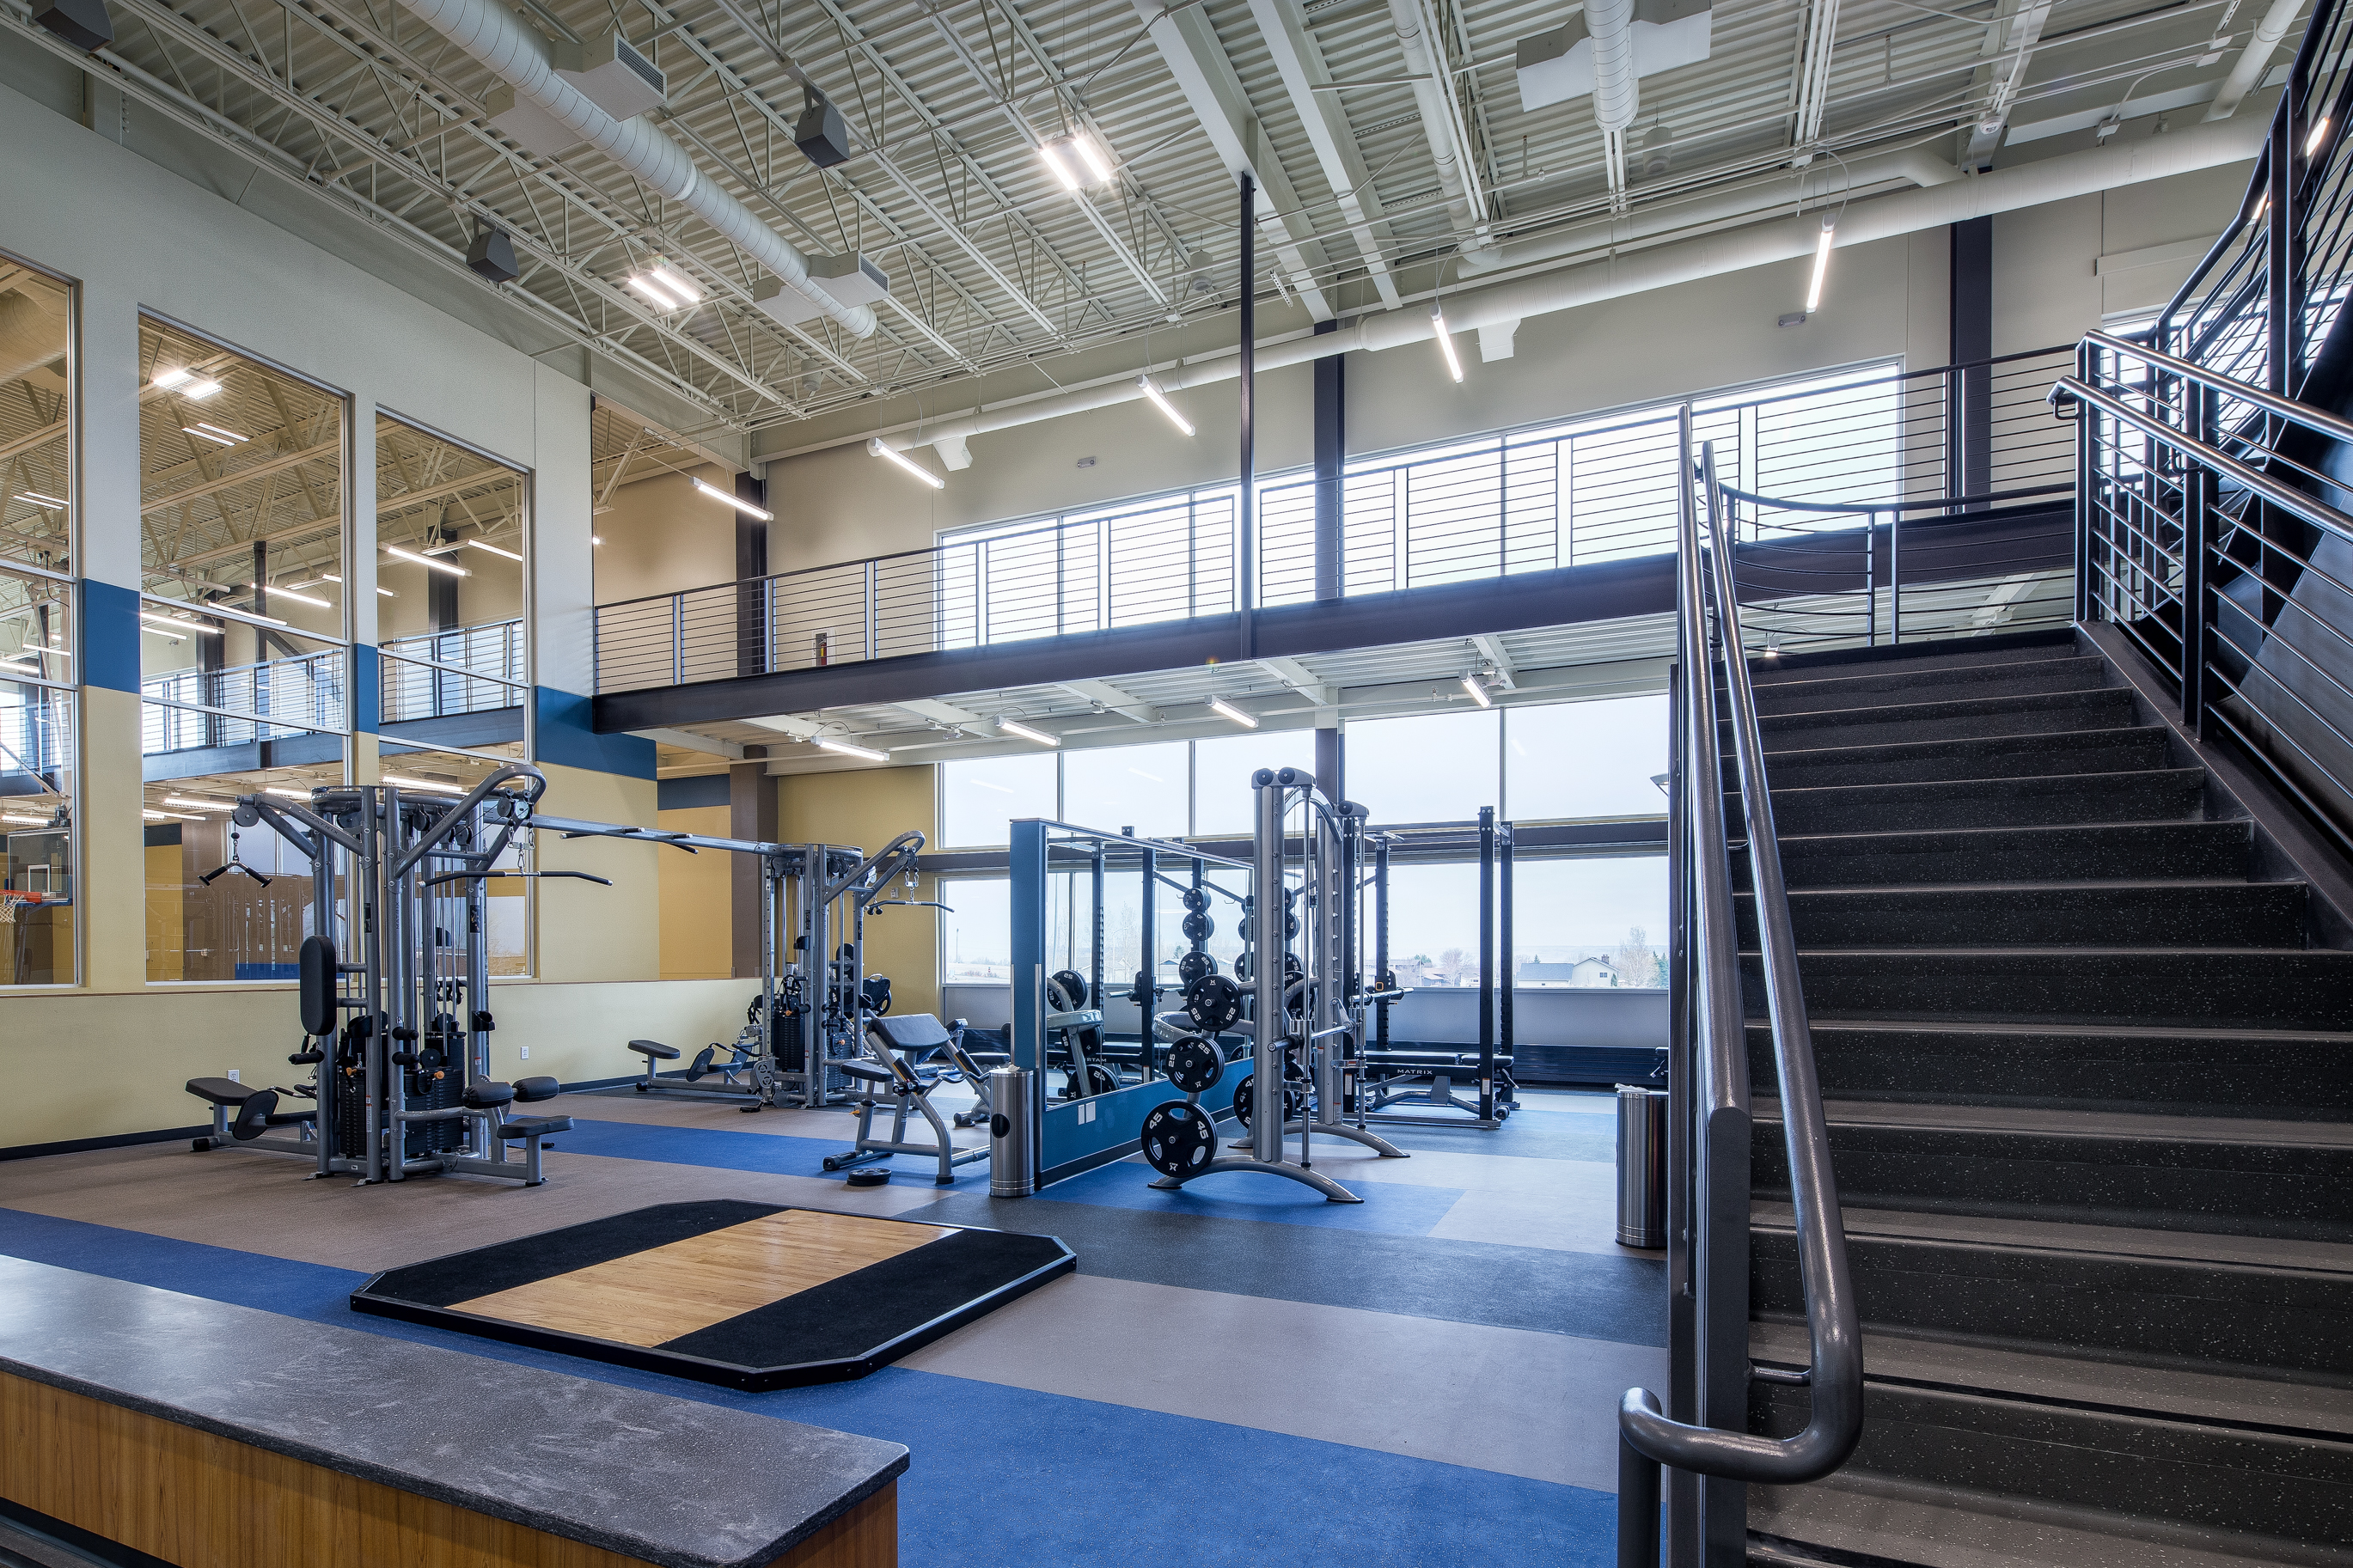 Energy Wellness Center work out area with weight lifting machines